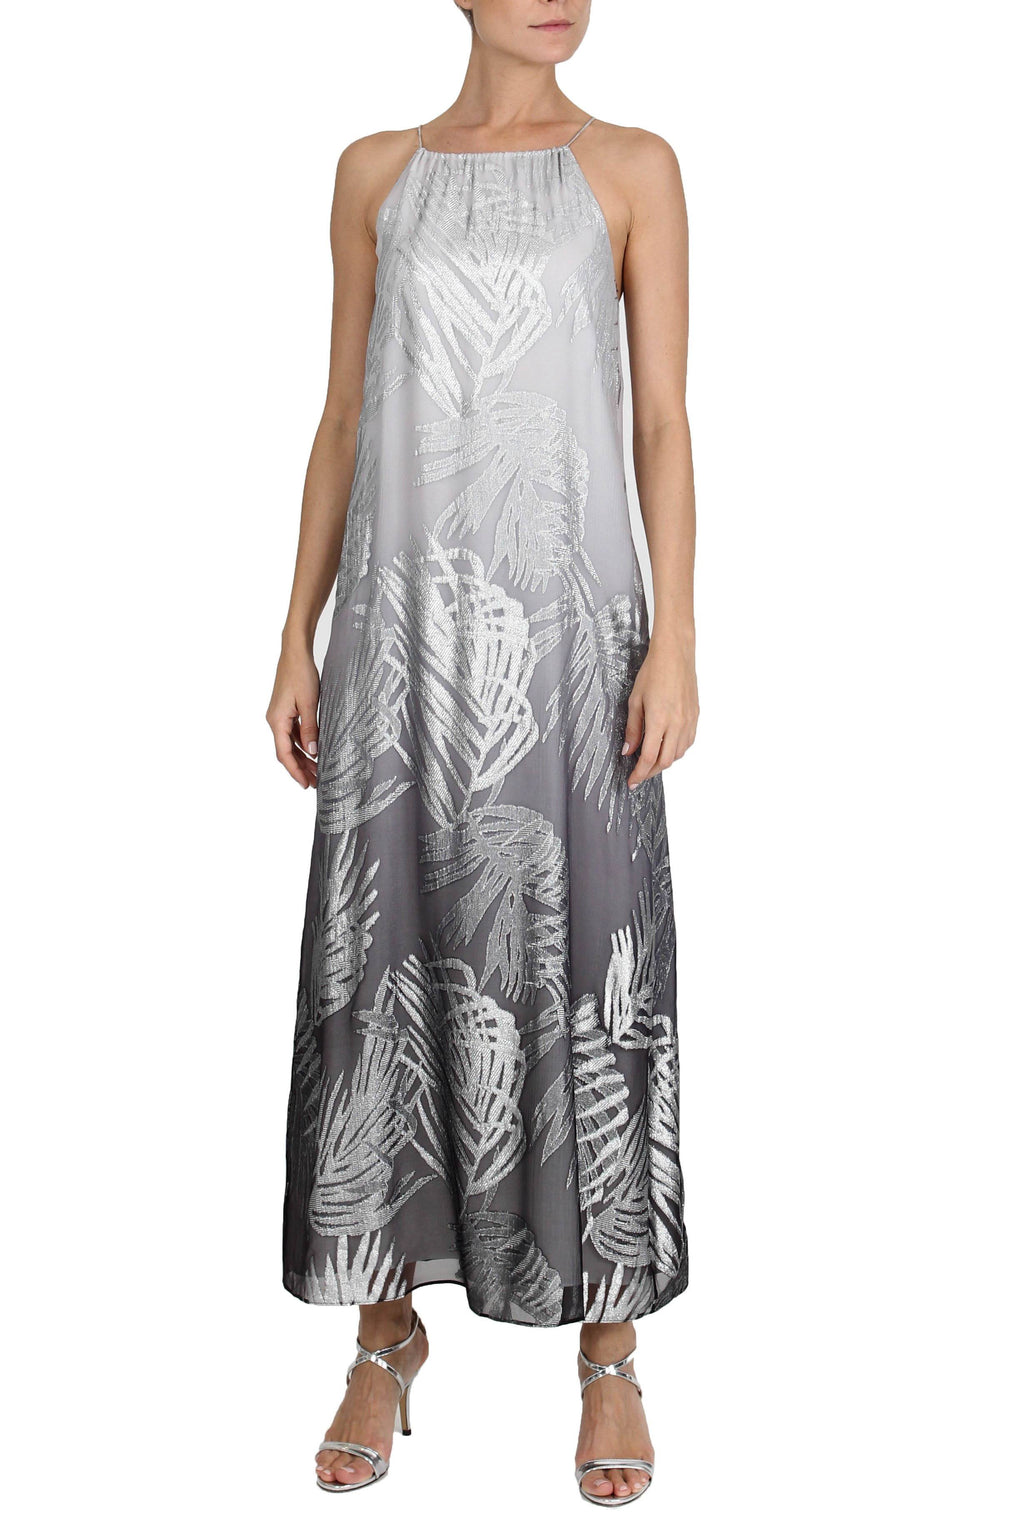 Ombre Palm Racer Back Long Dress Dresses Marie France Van Damme 0 Silver Ombre